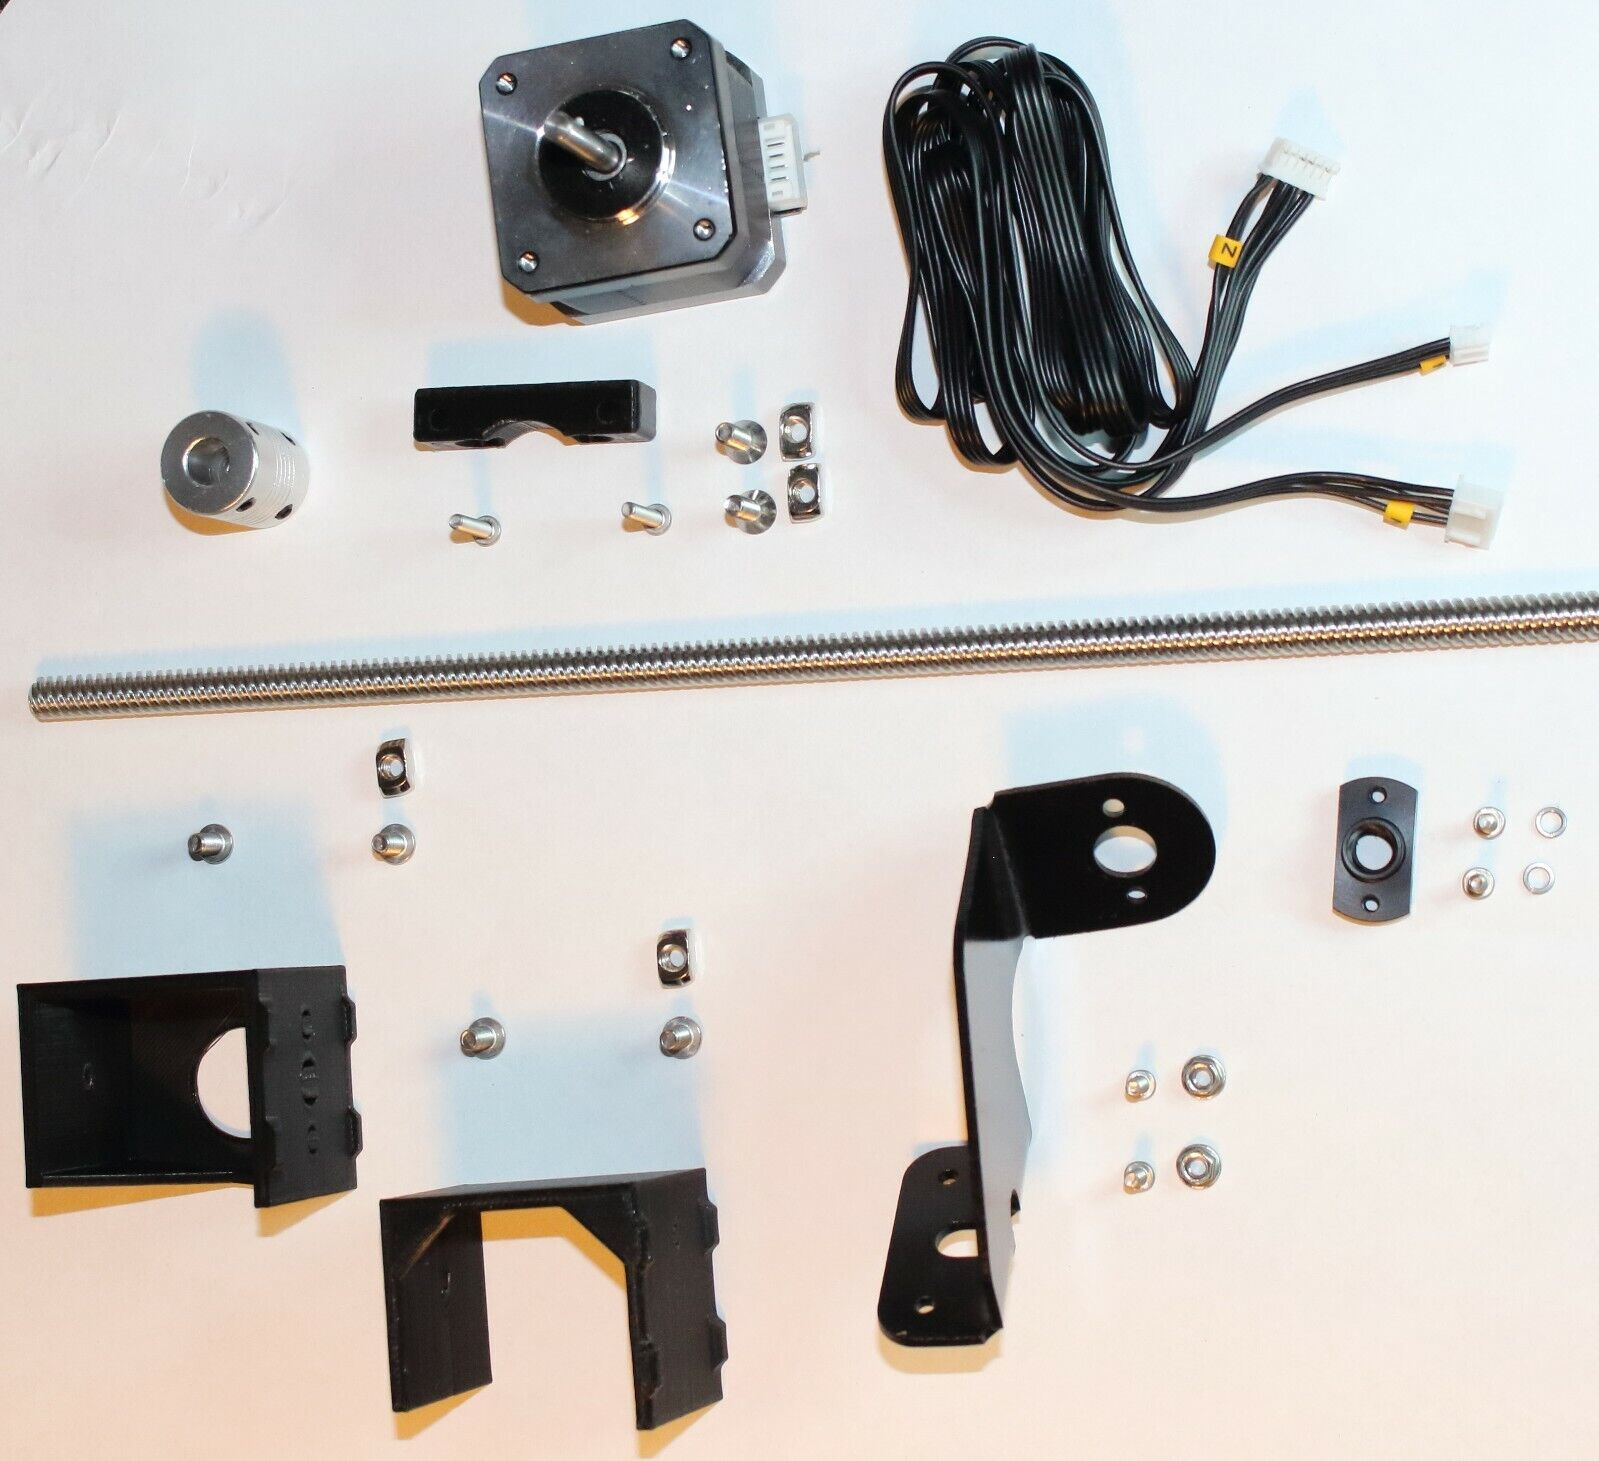 Dual Z-axis upgrade Kit for Creality Ender 3/3-Pro+ incl. power supply brackets